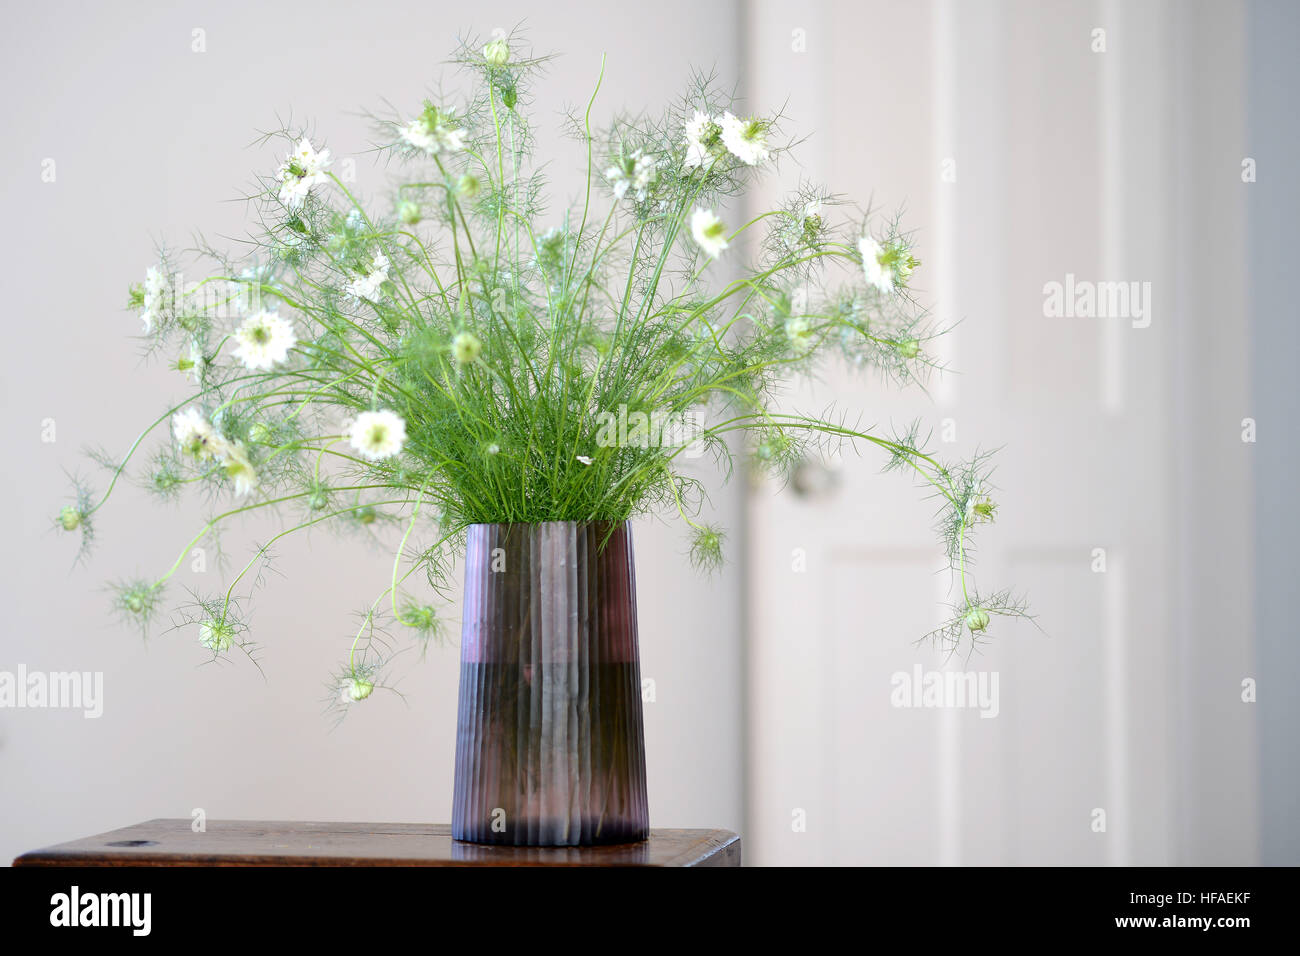 Smokey glass vase with love-in-a-mist nigella flower display inside - Stock Image